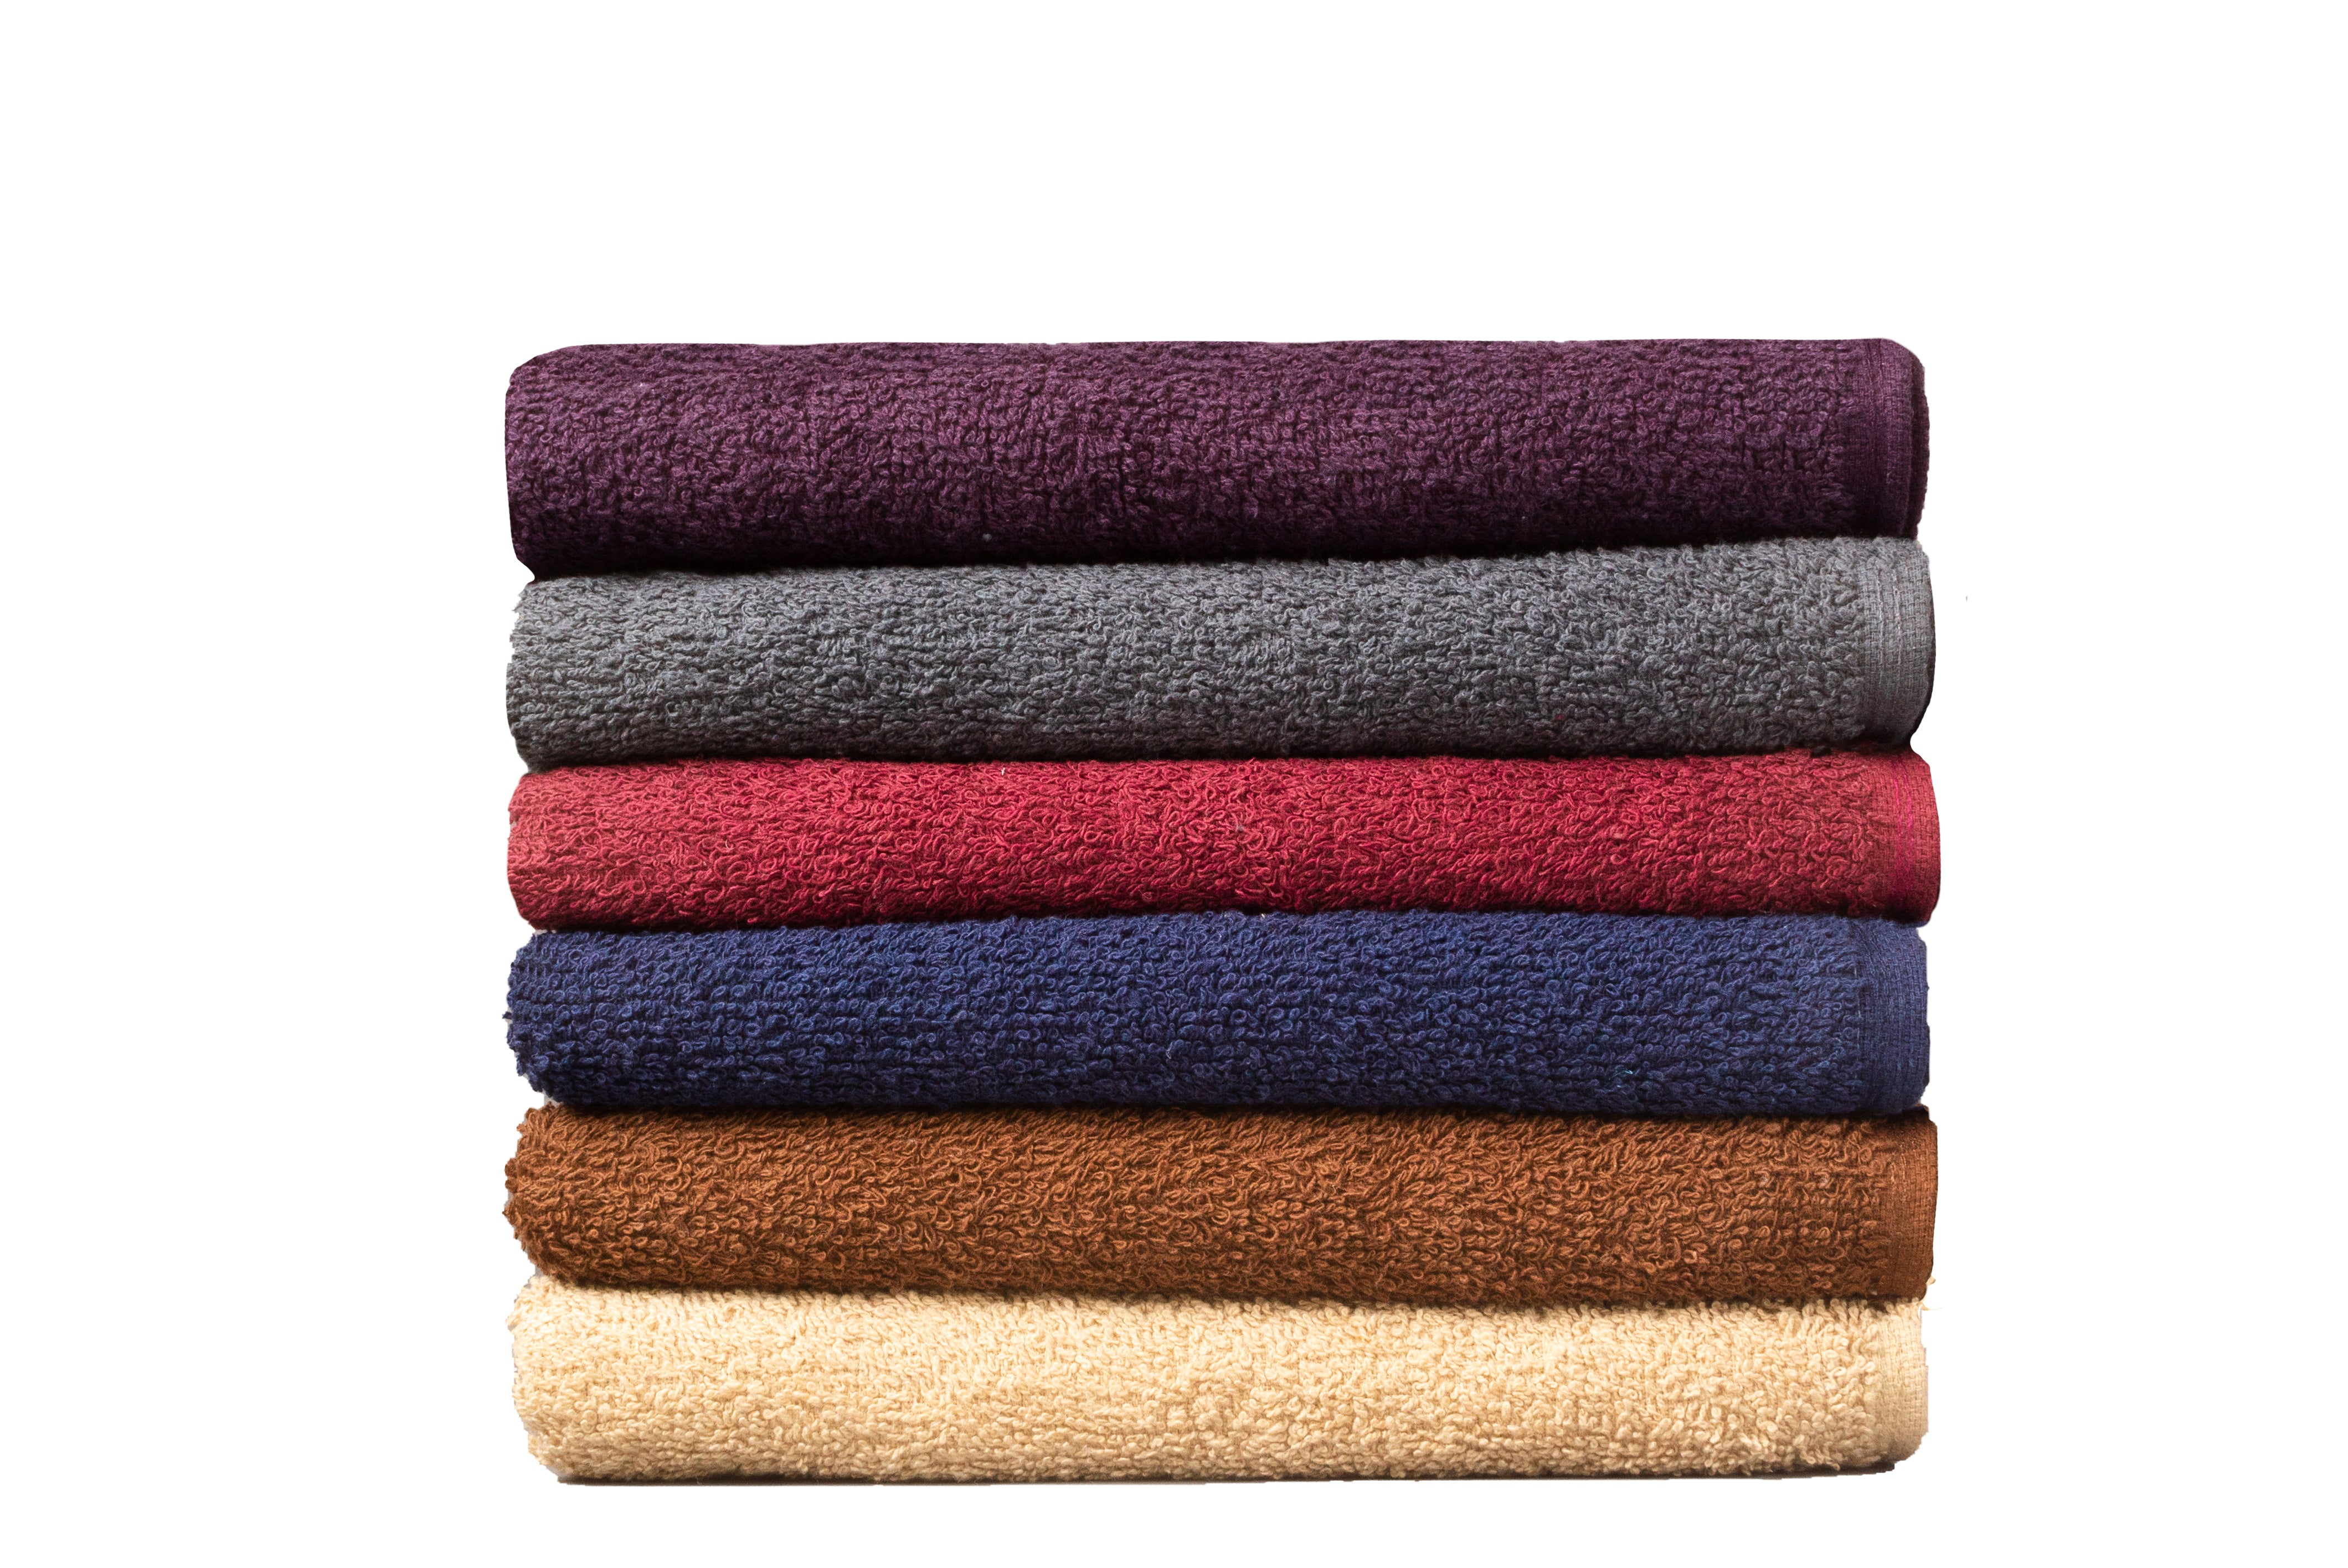 Partex Goliath™ Towels